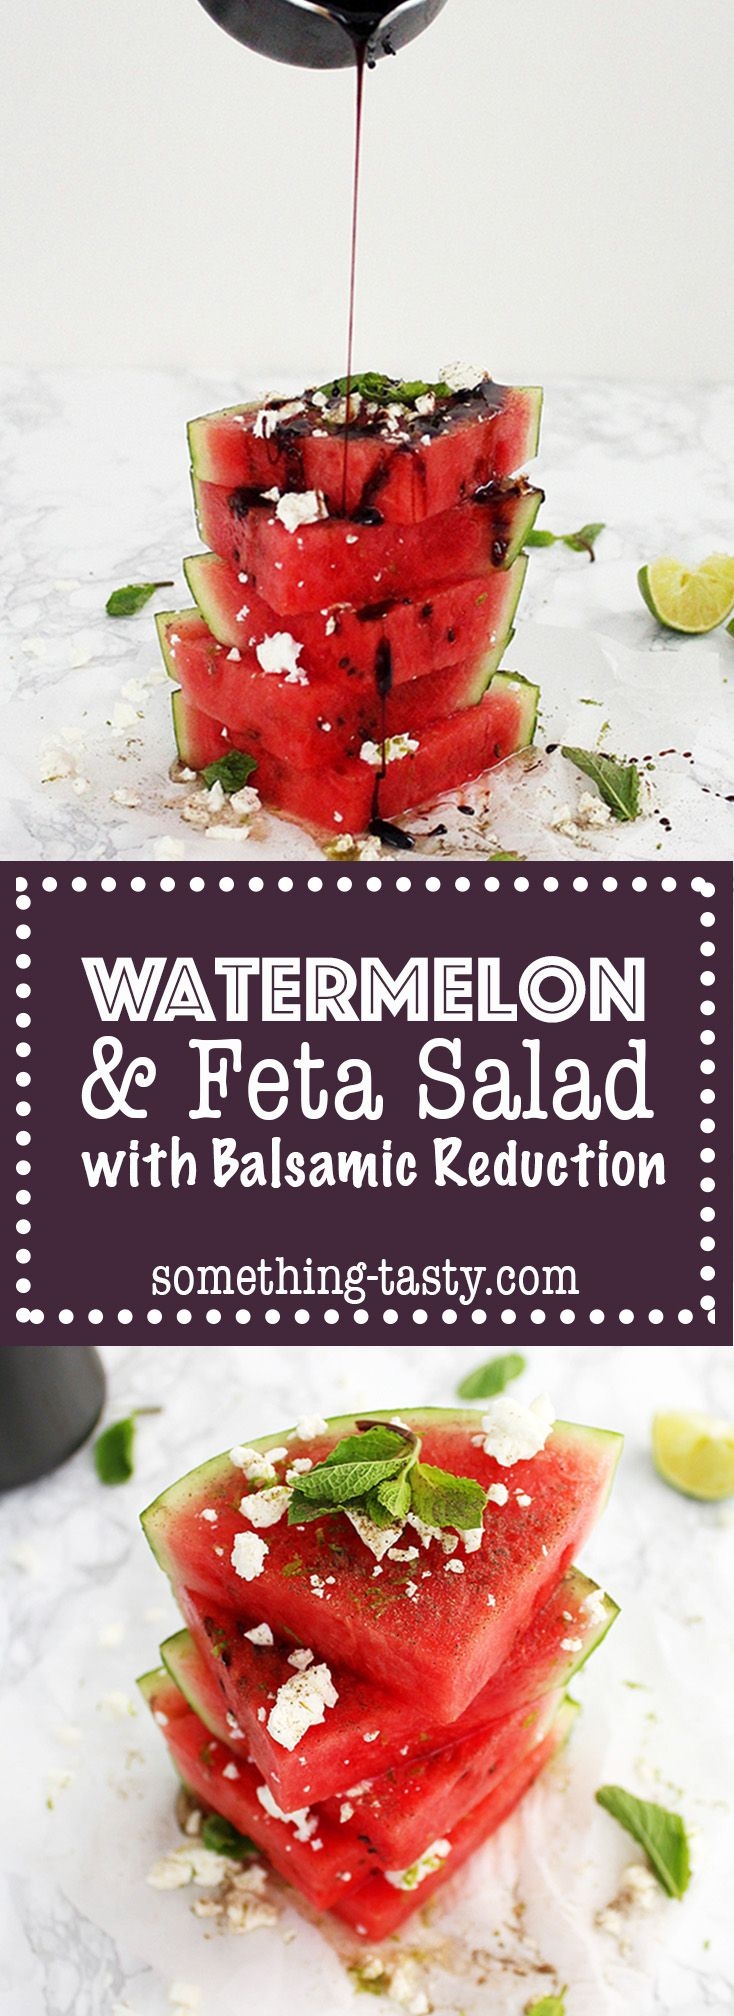 This cooling, colourful and refreshing Watermelon and Feta Salad with Balsamic Reduction is the perfect light alternative to a hot, hearty meal during a warm summers day.